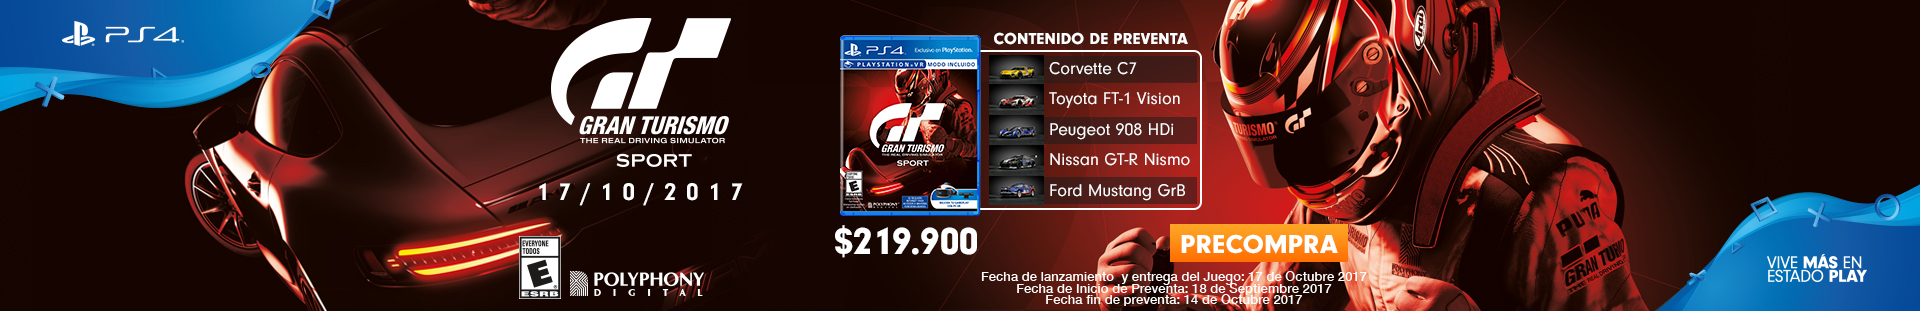 CAT-AK-KT-2-videojuegos-gtsport-cat-sept20-15 oct